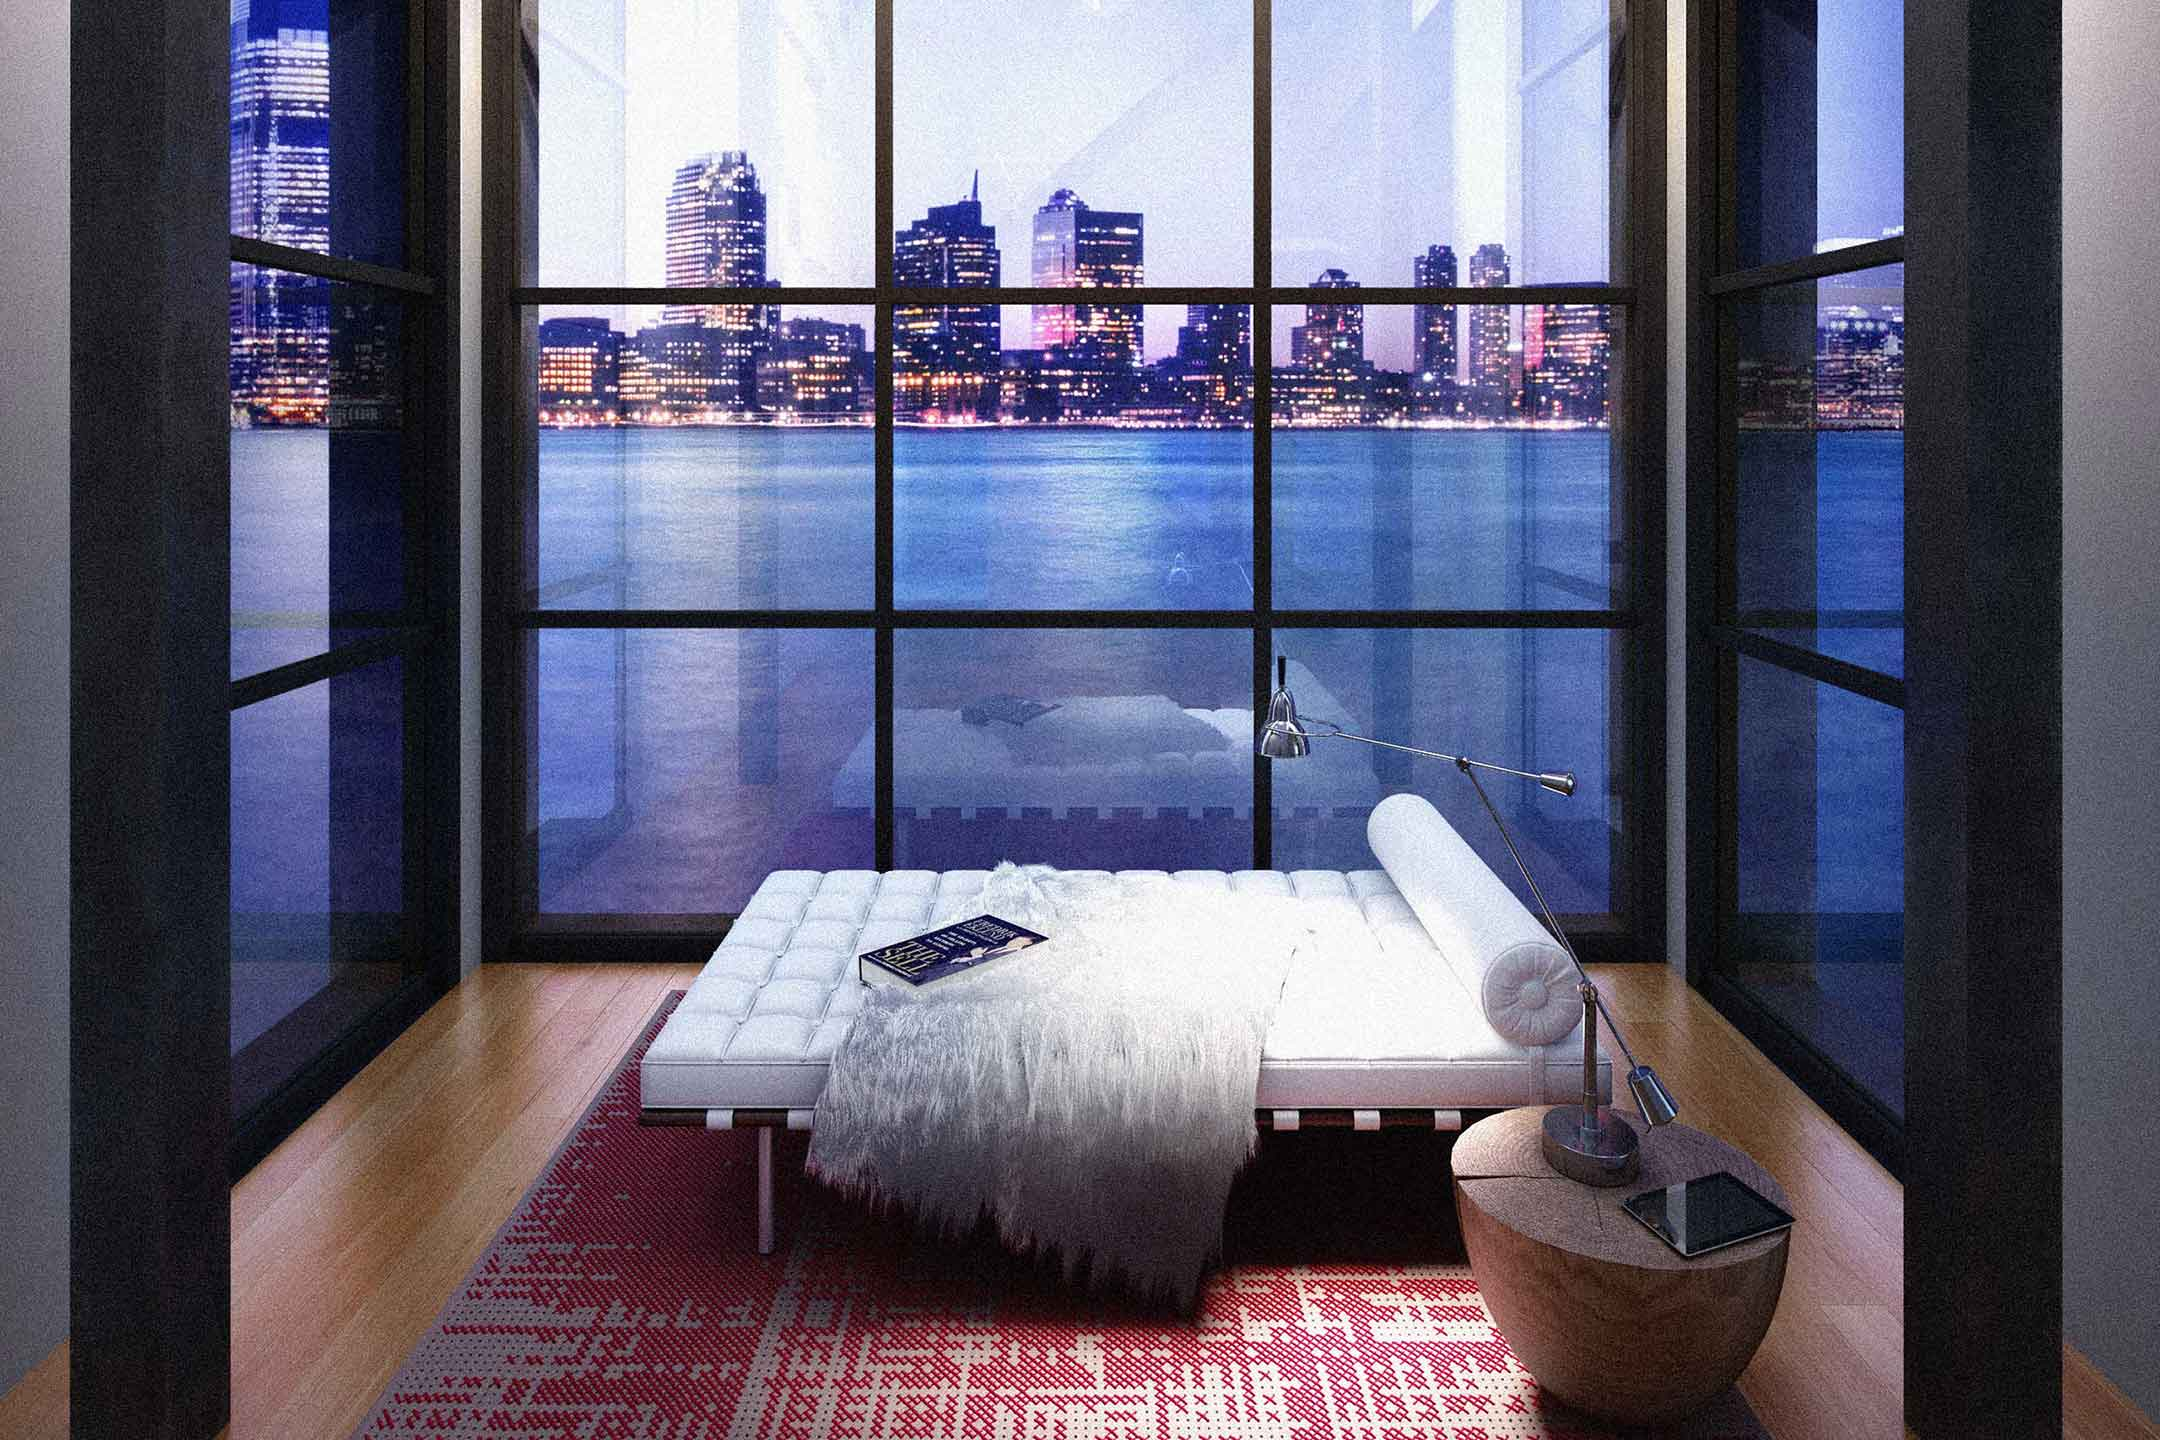 Rendering of study room with water view of New Jersey